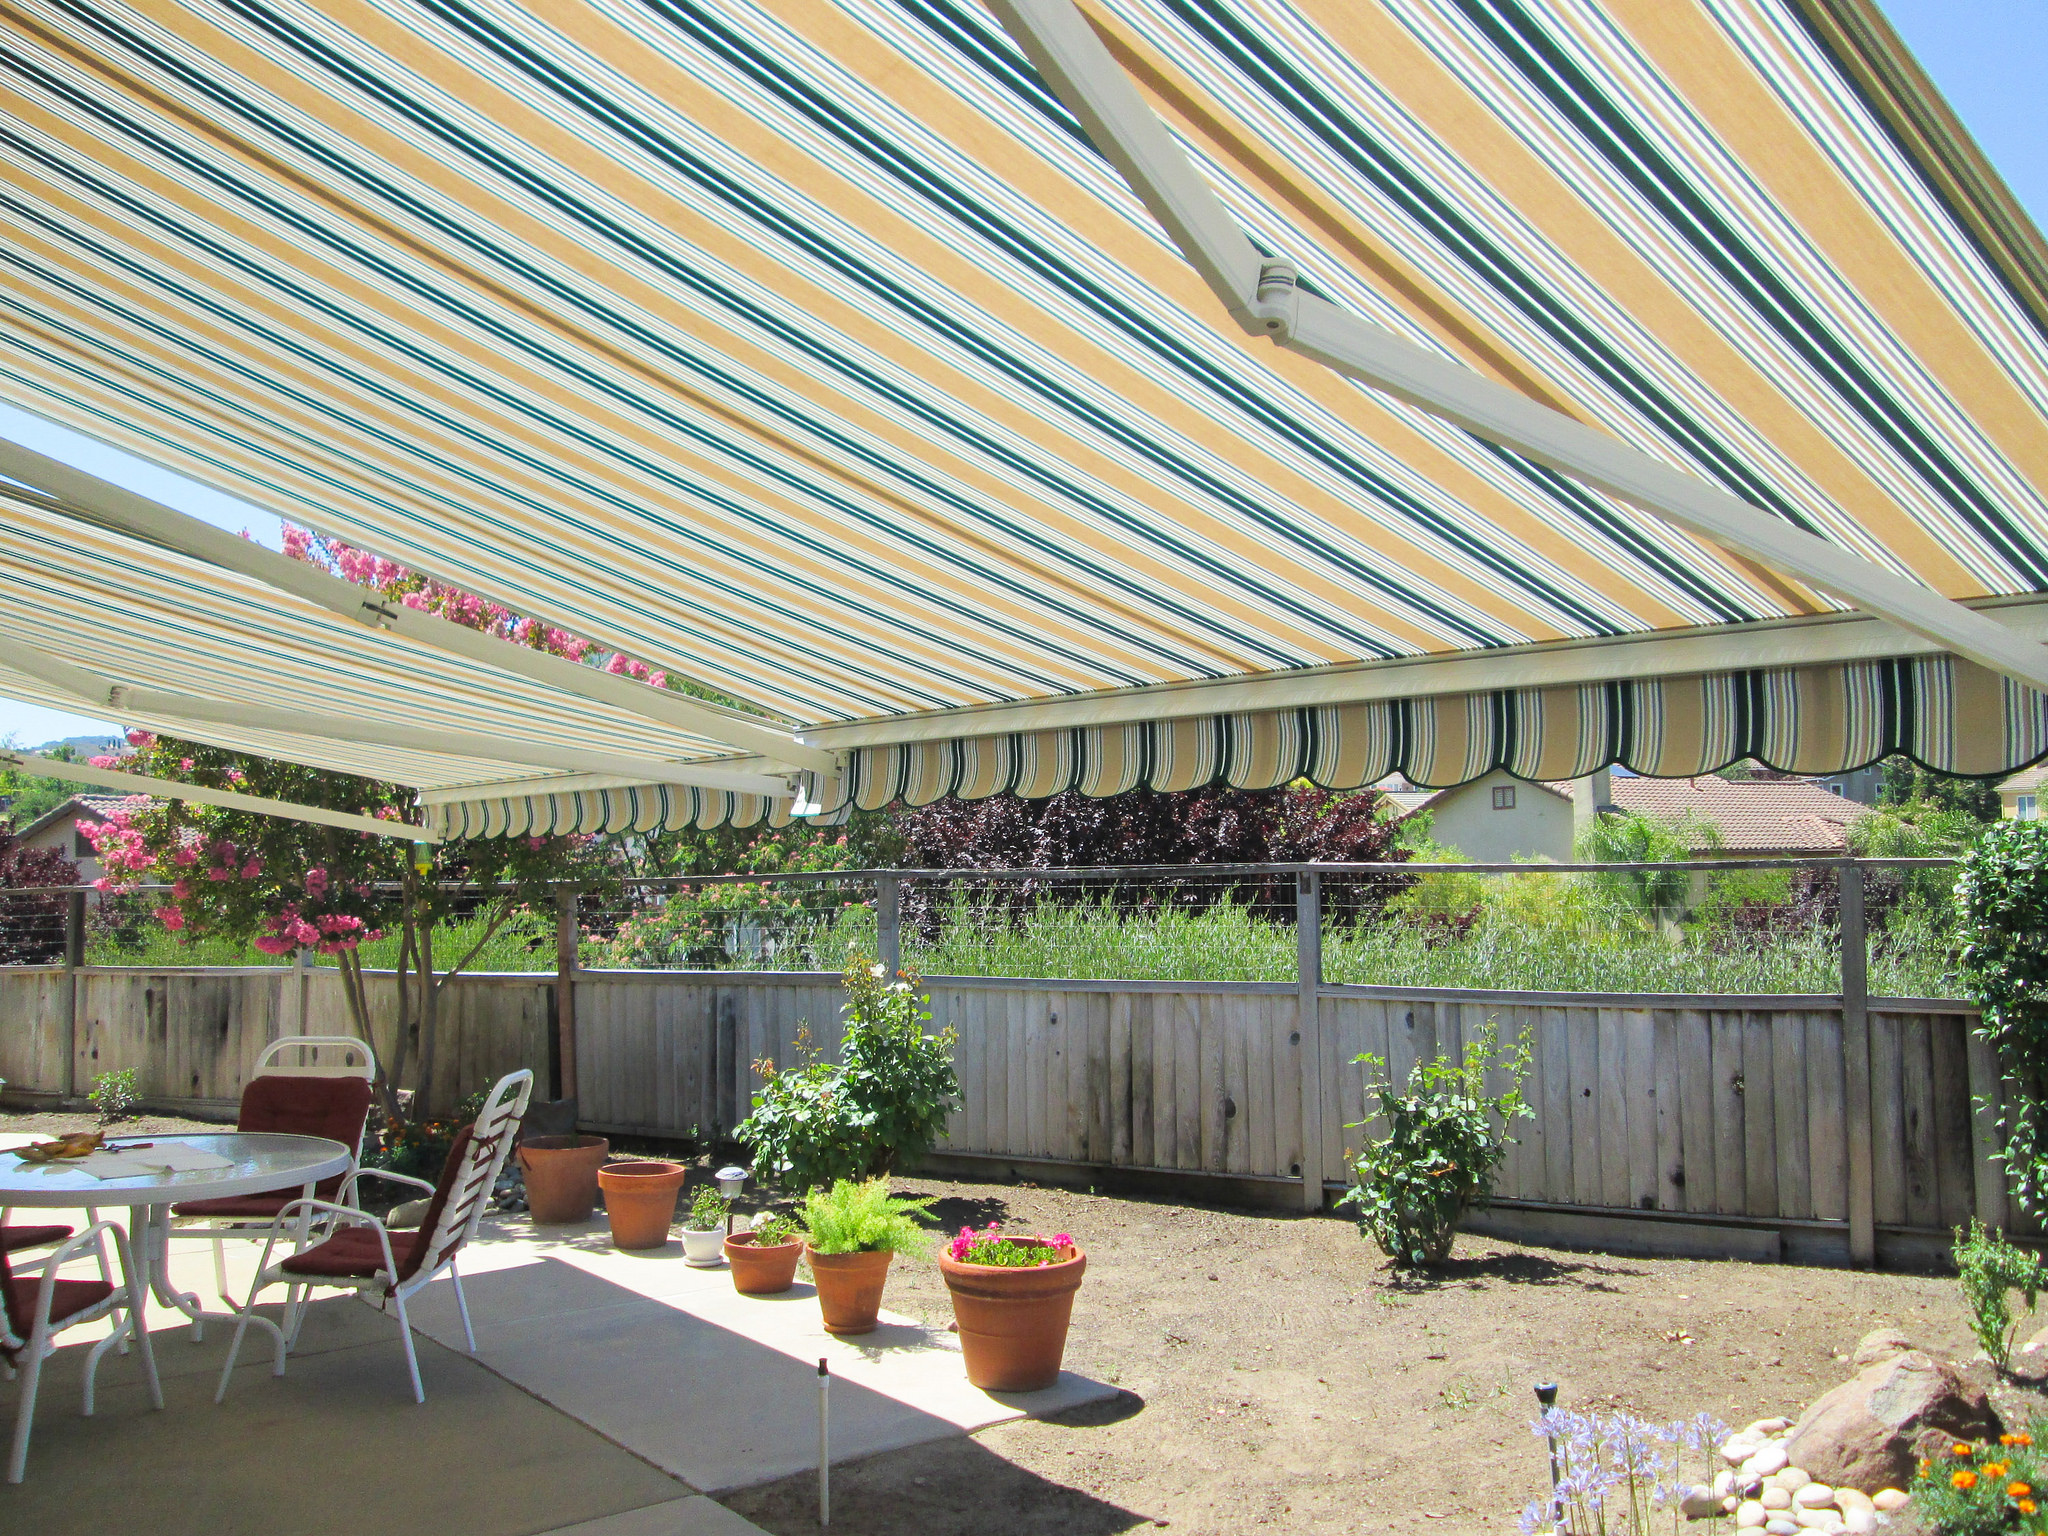 Best awning ideas to create a stunning patio